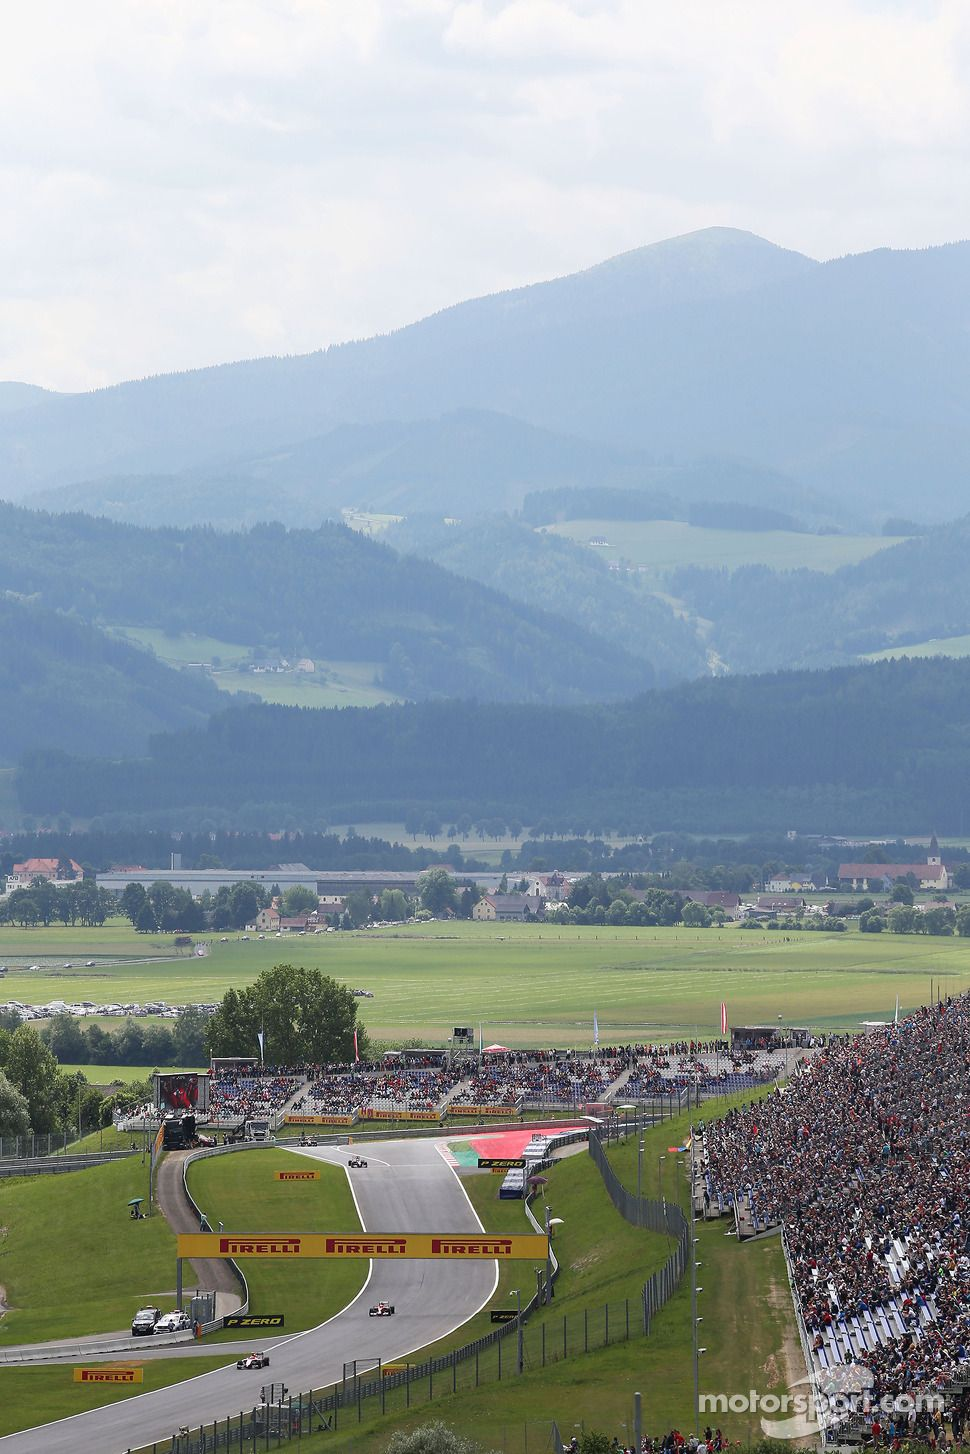 More The Scenic Red Bull Ring Formule 1 Circuit